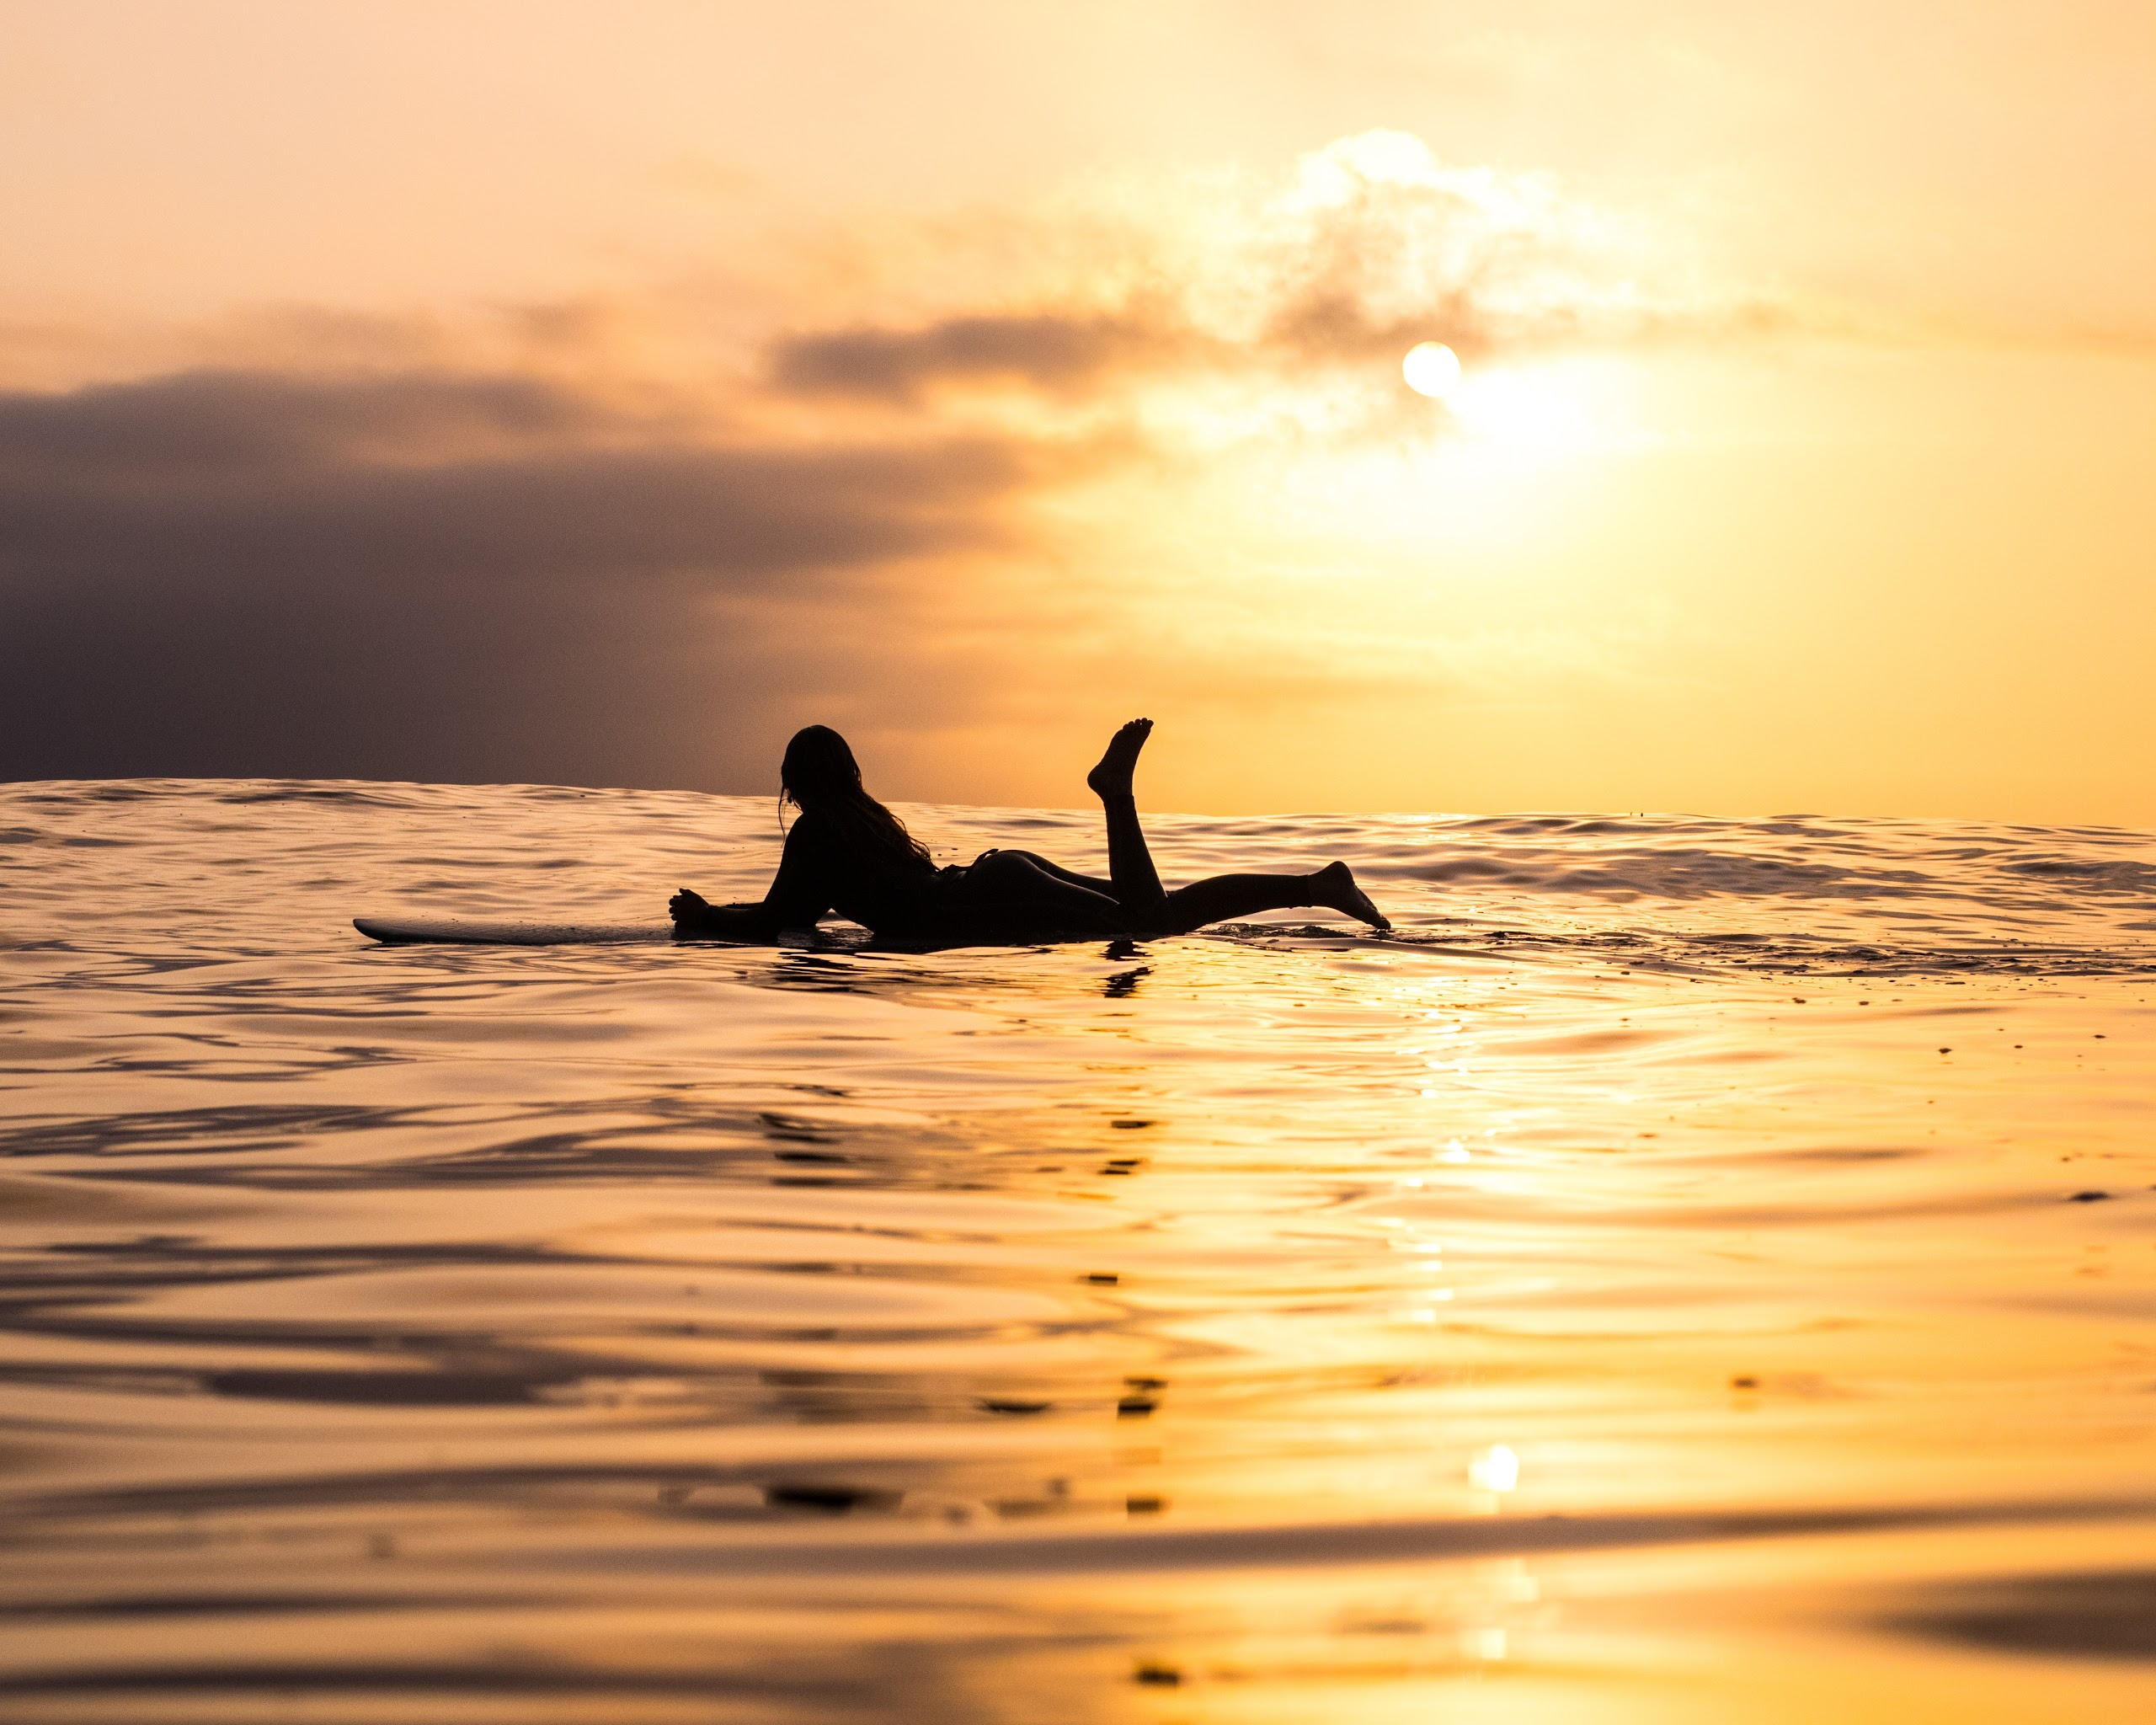 Girl On Surfing Board The Sea In Sunset